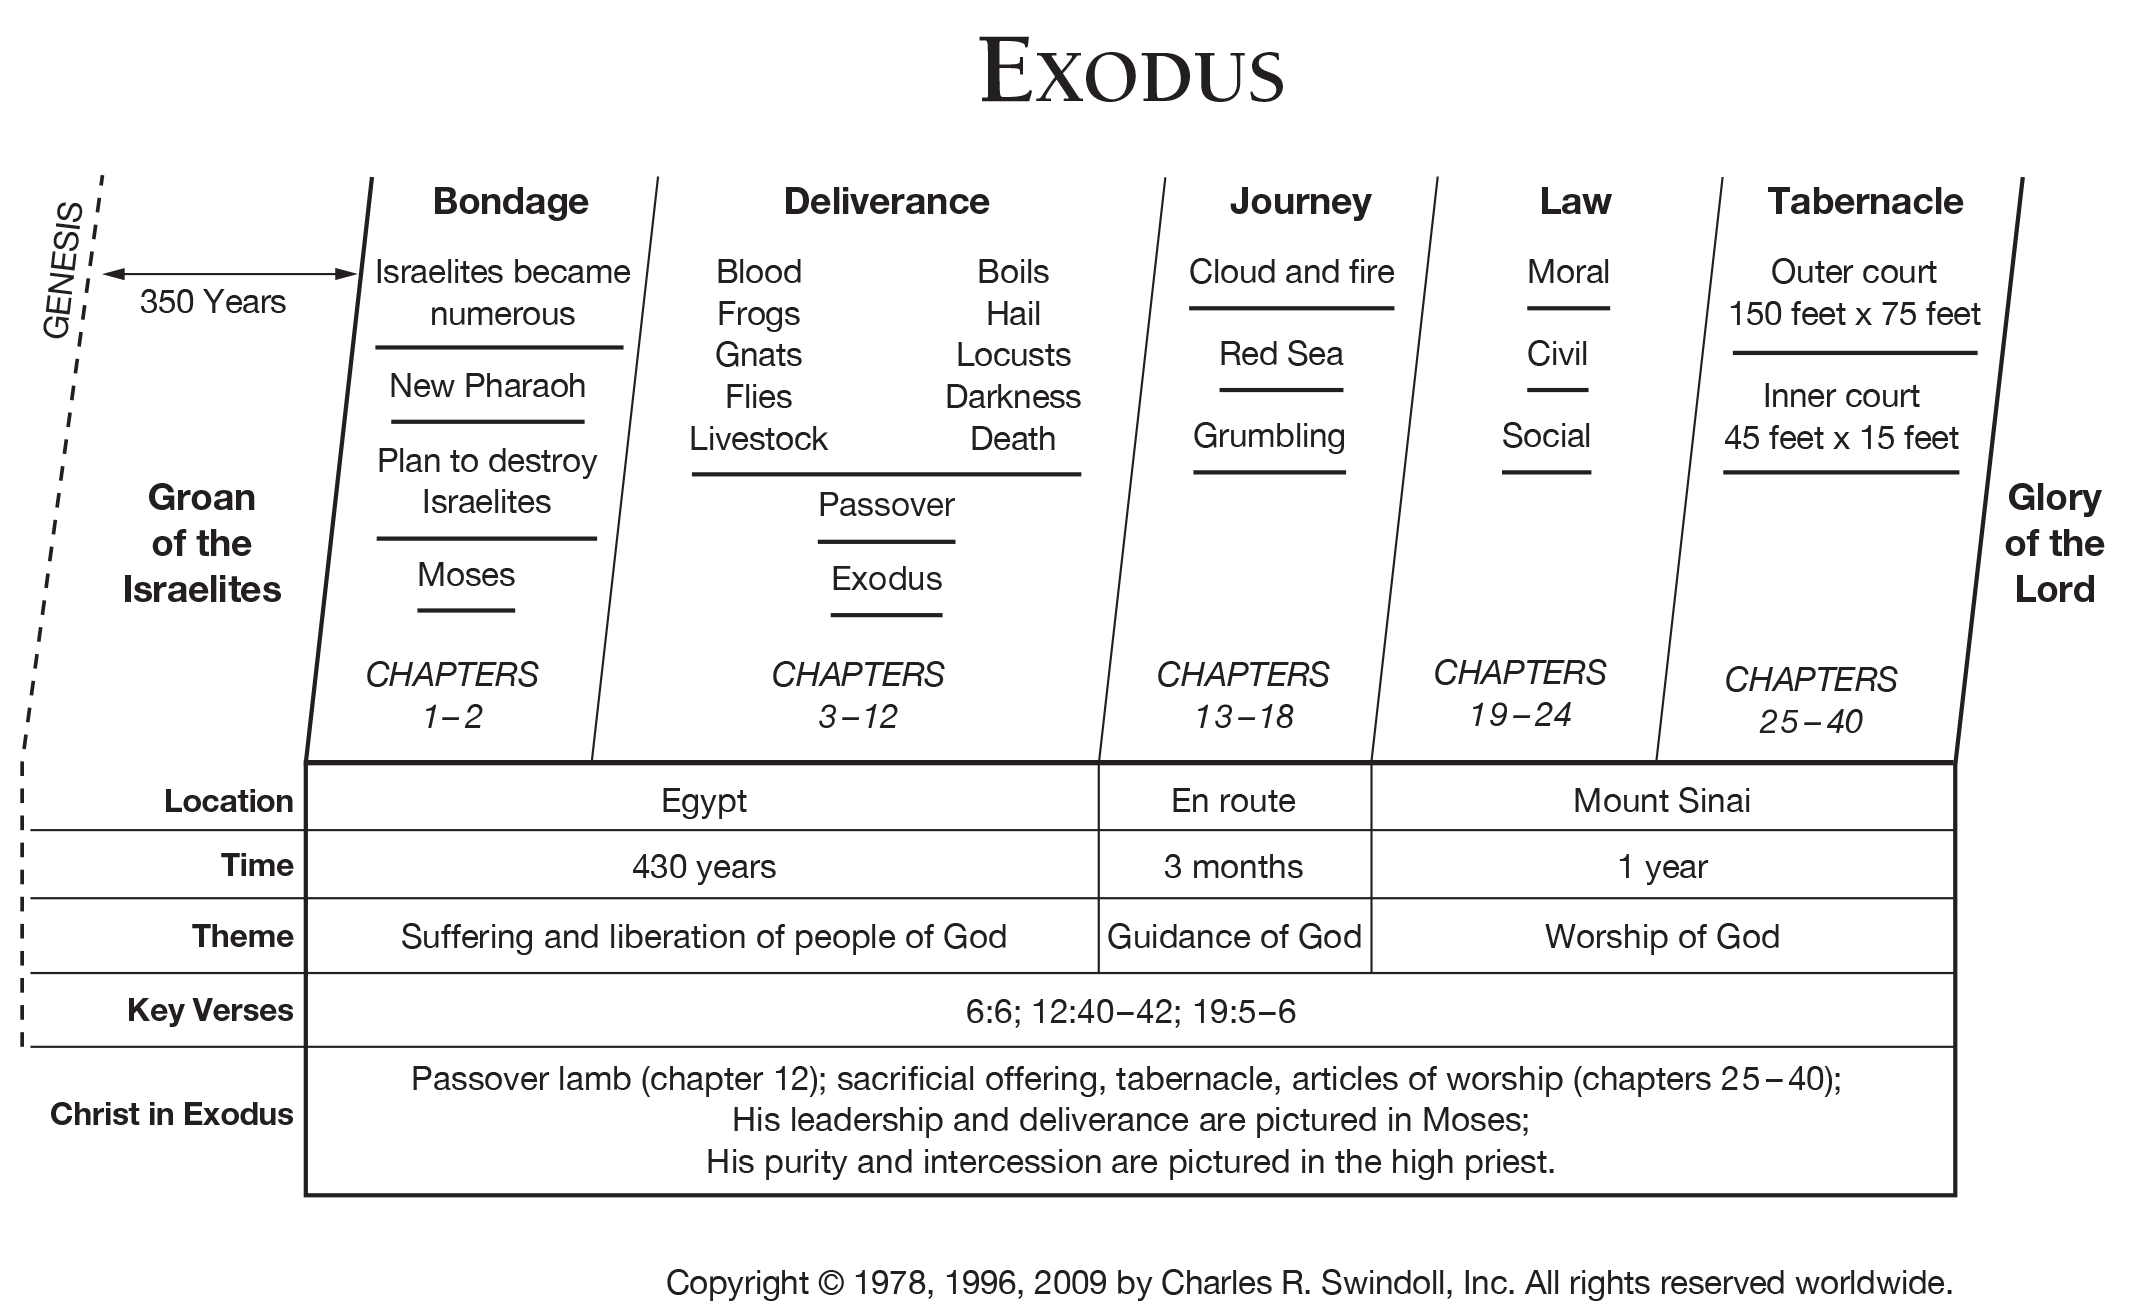 https://insightforliving.swncdn.com/images/ifl-usa/content/ascendio/resources/bible/02-Exodus.png